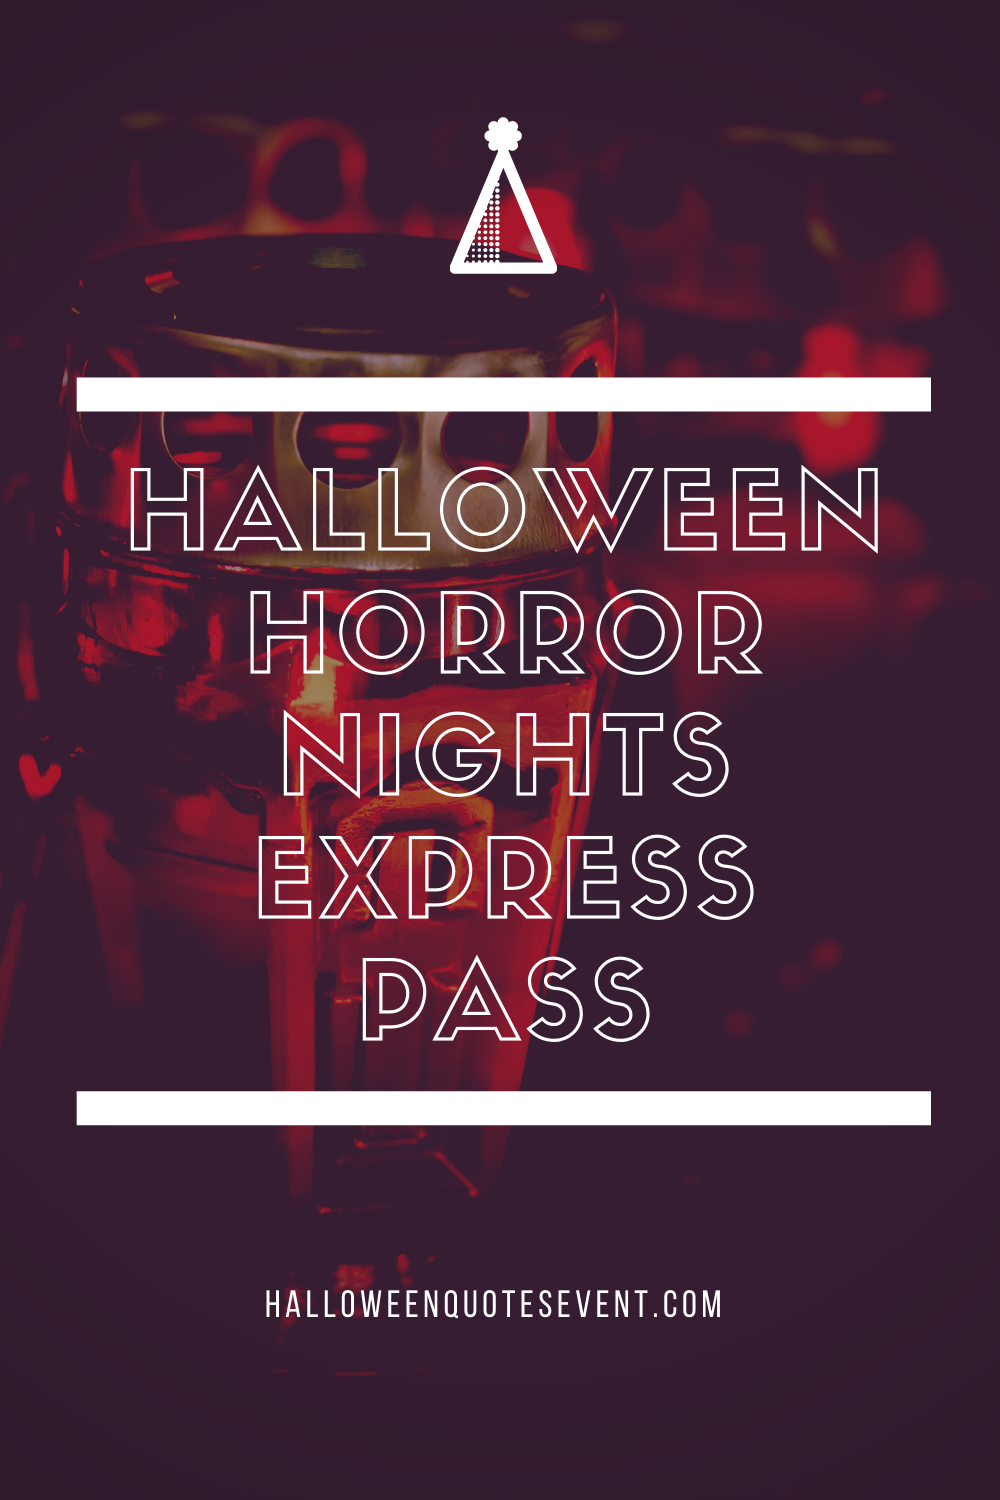 Halloween Horror Nights Express Pass 2020 Halloween Horror Nights Express Pass in 2020 | Halloween horror